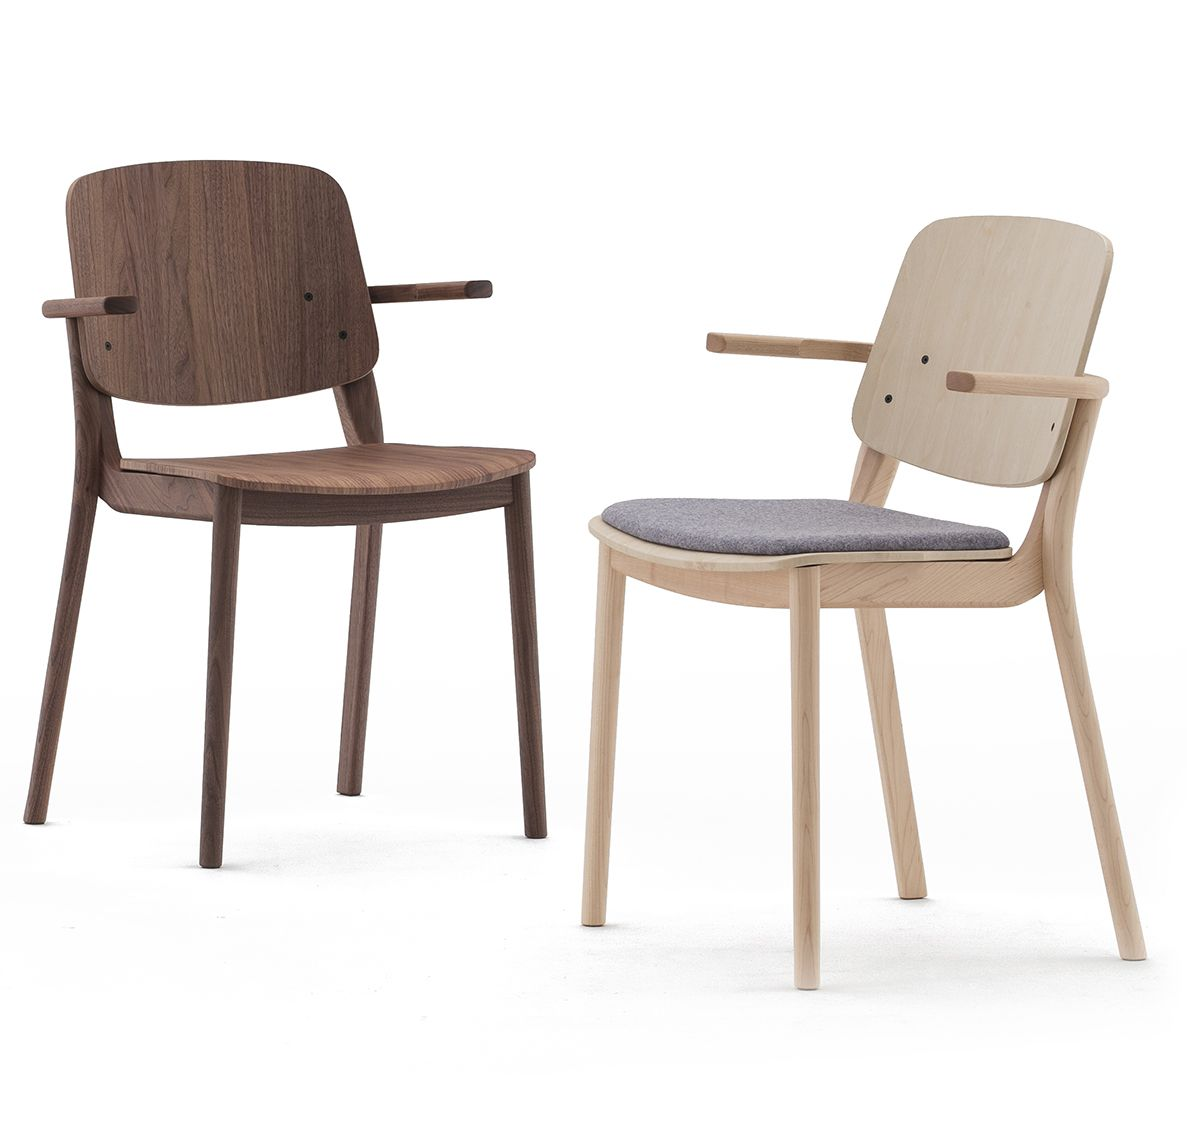 Mia stacking chair by Jin Kuramoto for Japanese design brand